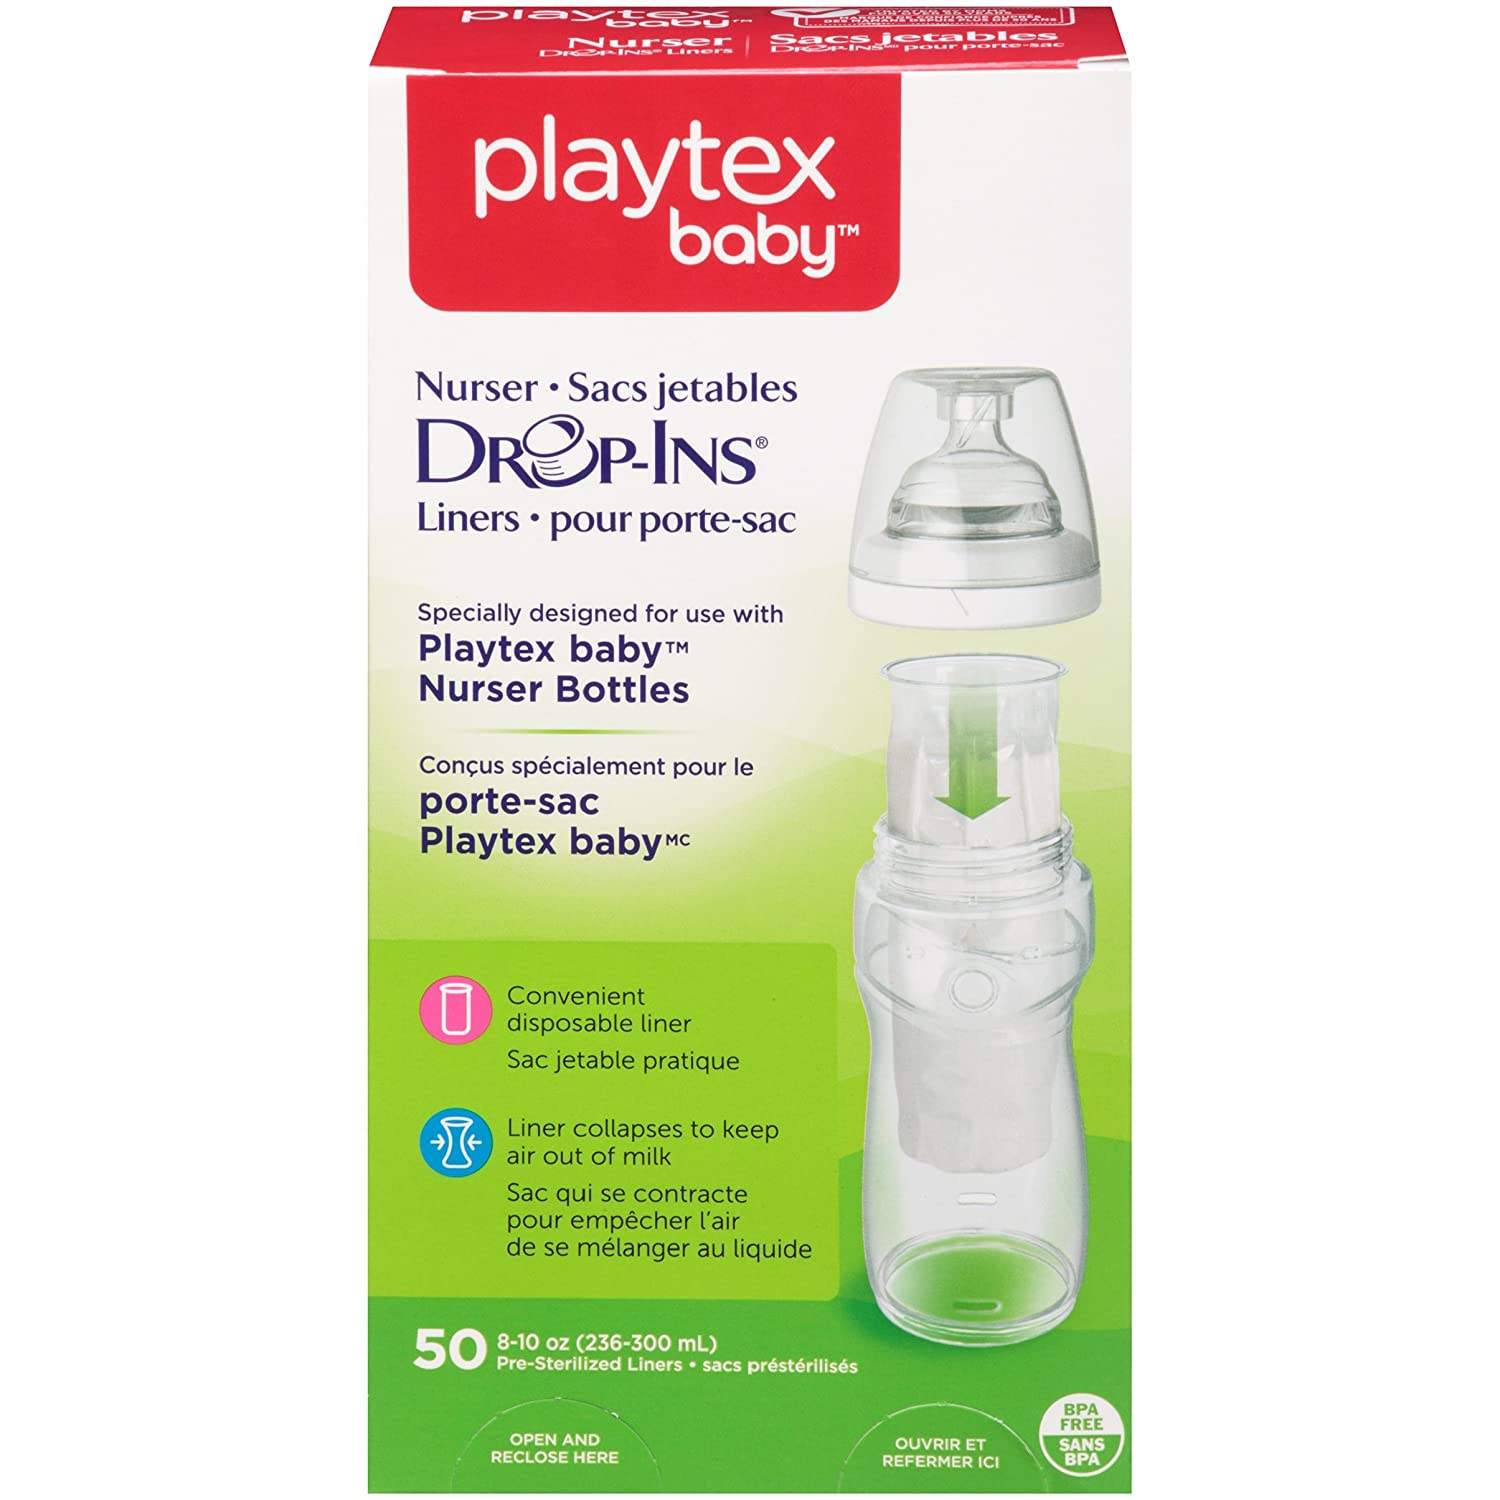 150 Count Playtex Baby Nurser Drop-Ins Baby Bottle Disposable Liners 4 Ounce Closer to Breastfeeding